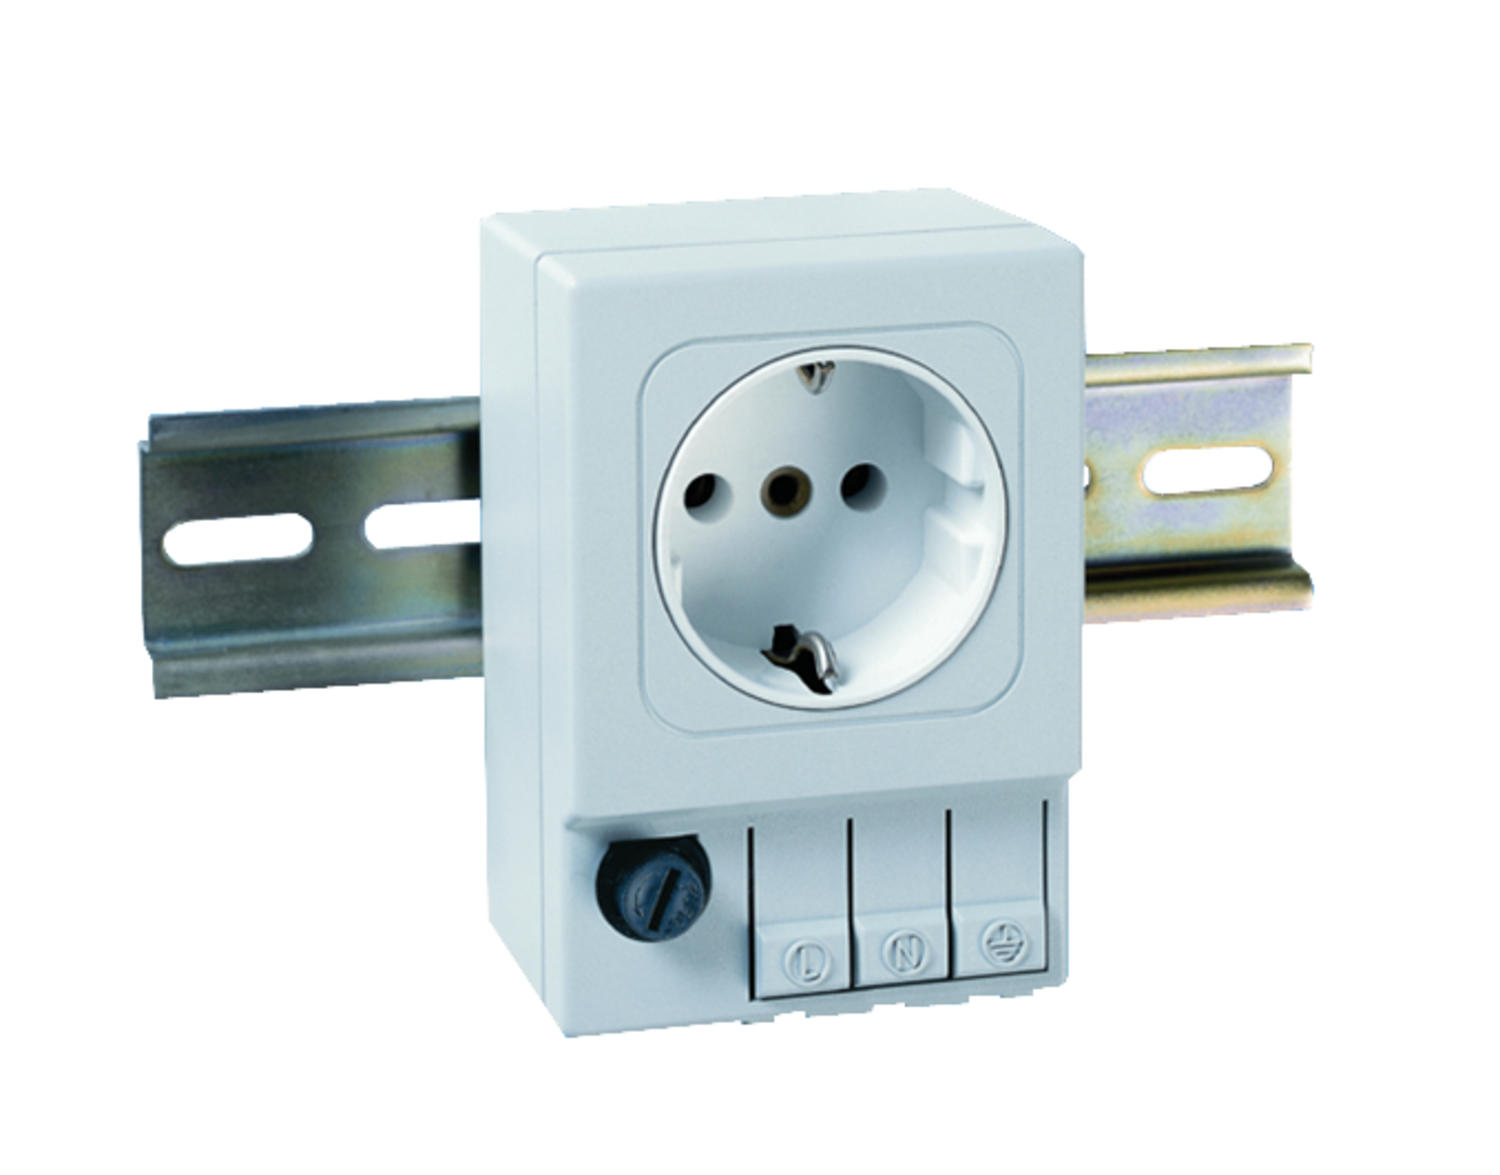 Outlet with bayonet coupling